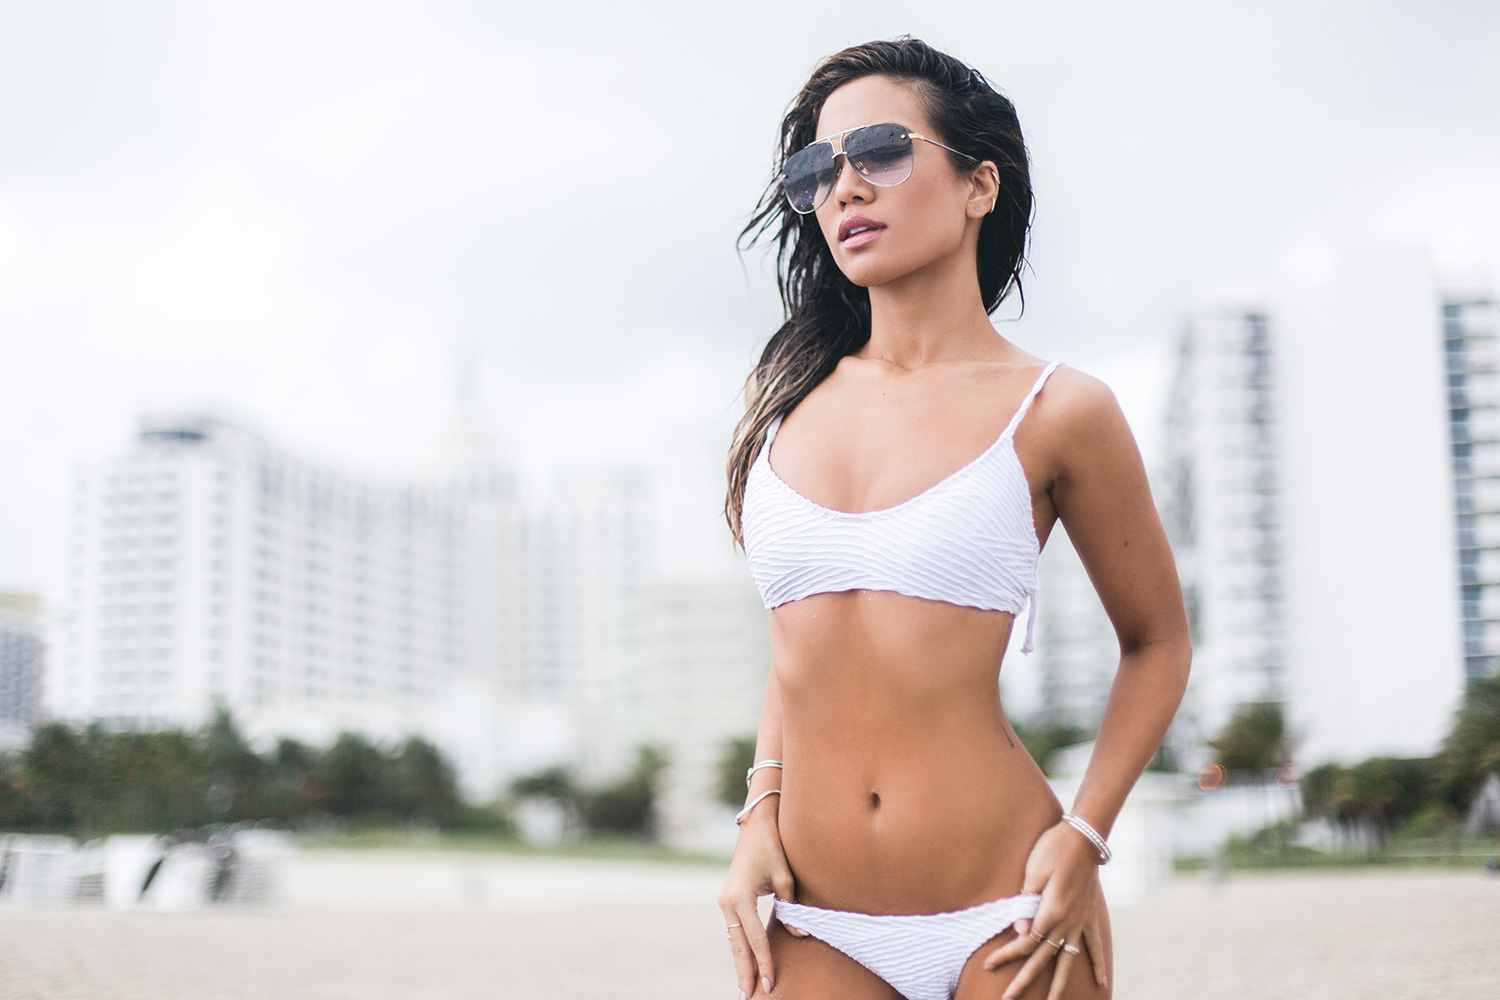 Jessi Malay in Miami for Art Basel Photoshoot